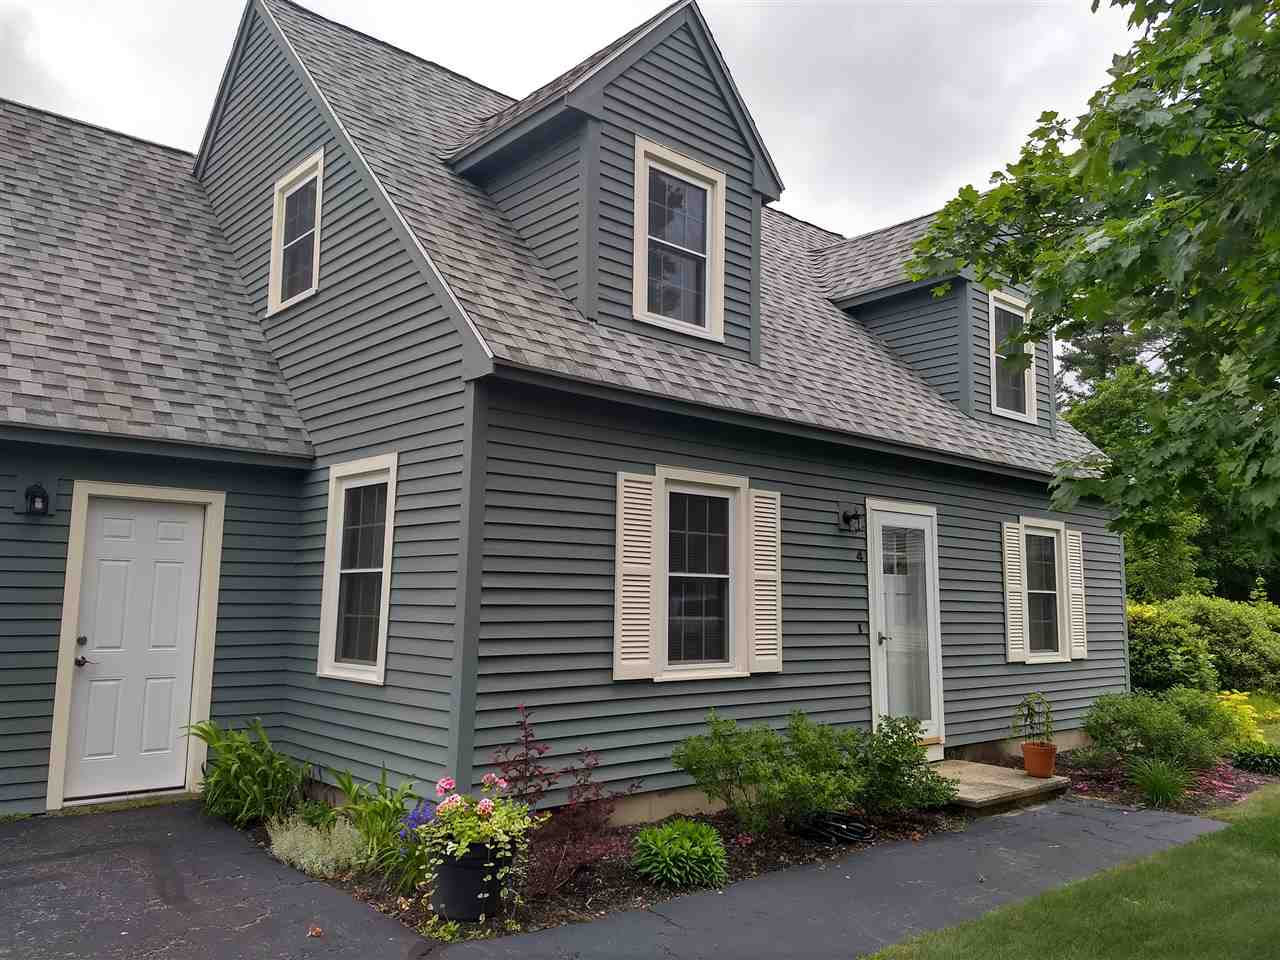 MLS 4768626: 4 Lavender Court Court, Merrimack NH